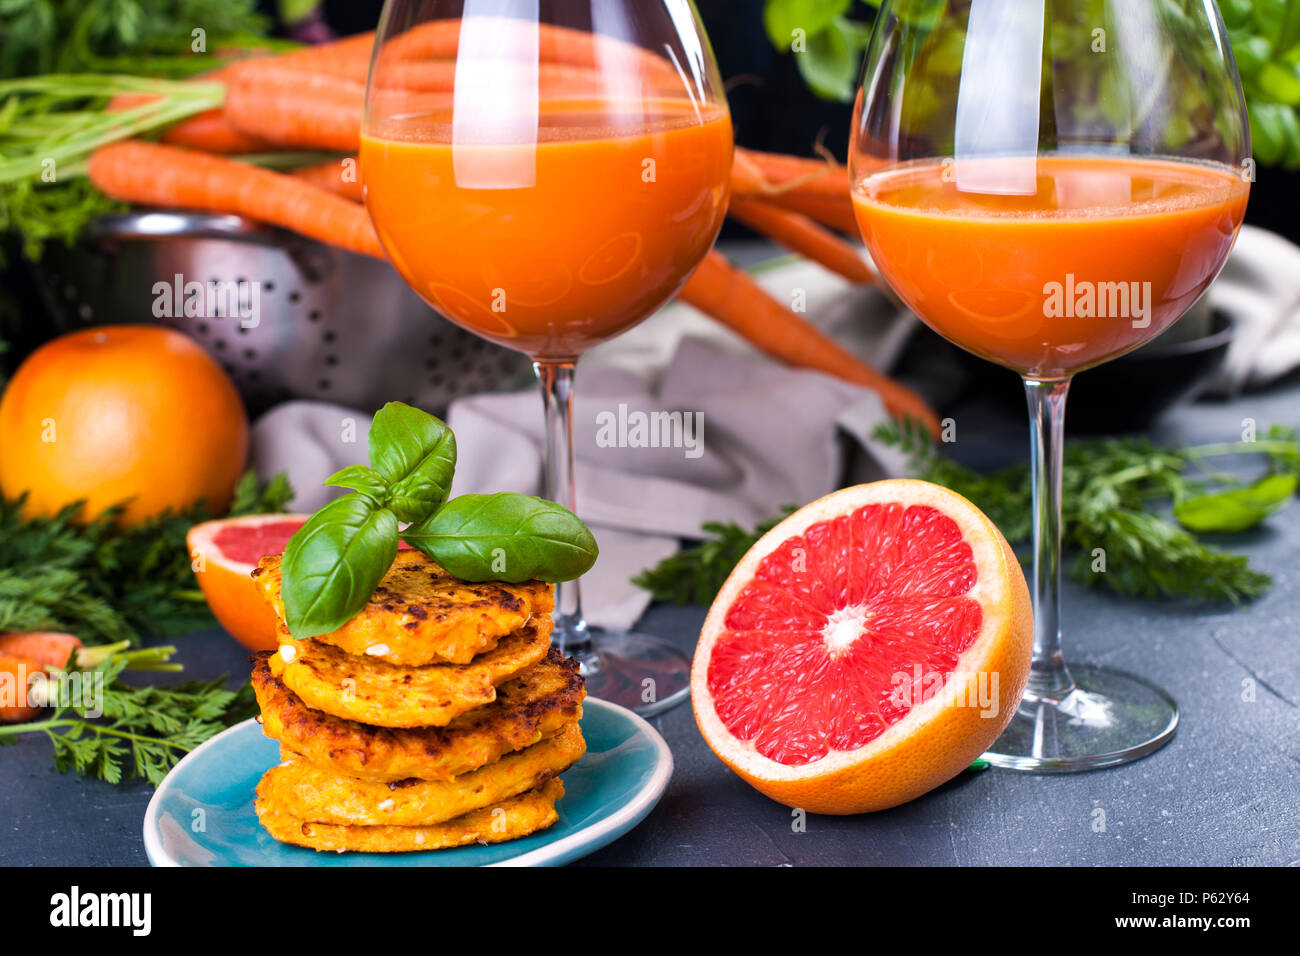 Juice from fresh carrots and grapefruit in a glass and fragrant pancakes for breakfast. vitamin drink for a healthy diet. Vitamins in food. Copy space - Stock Image